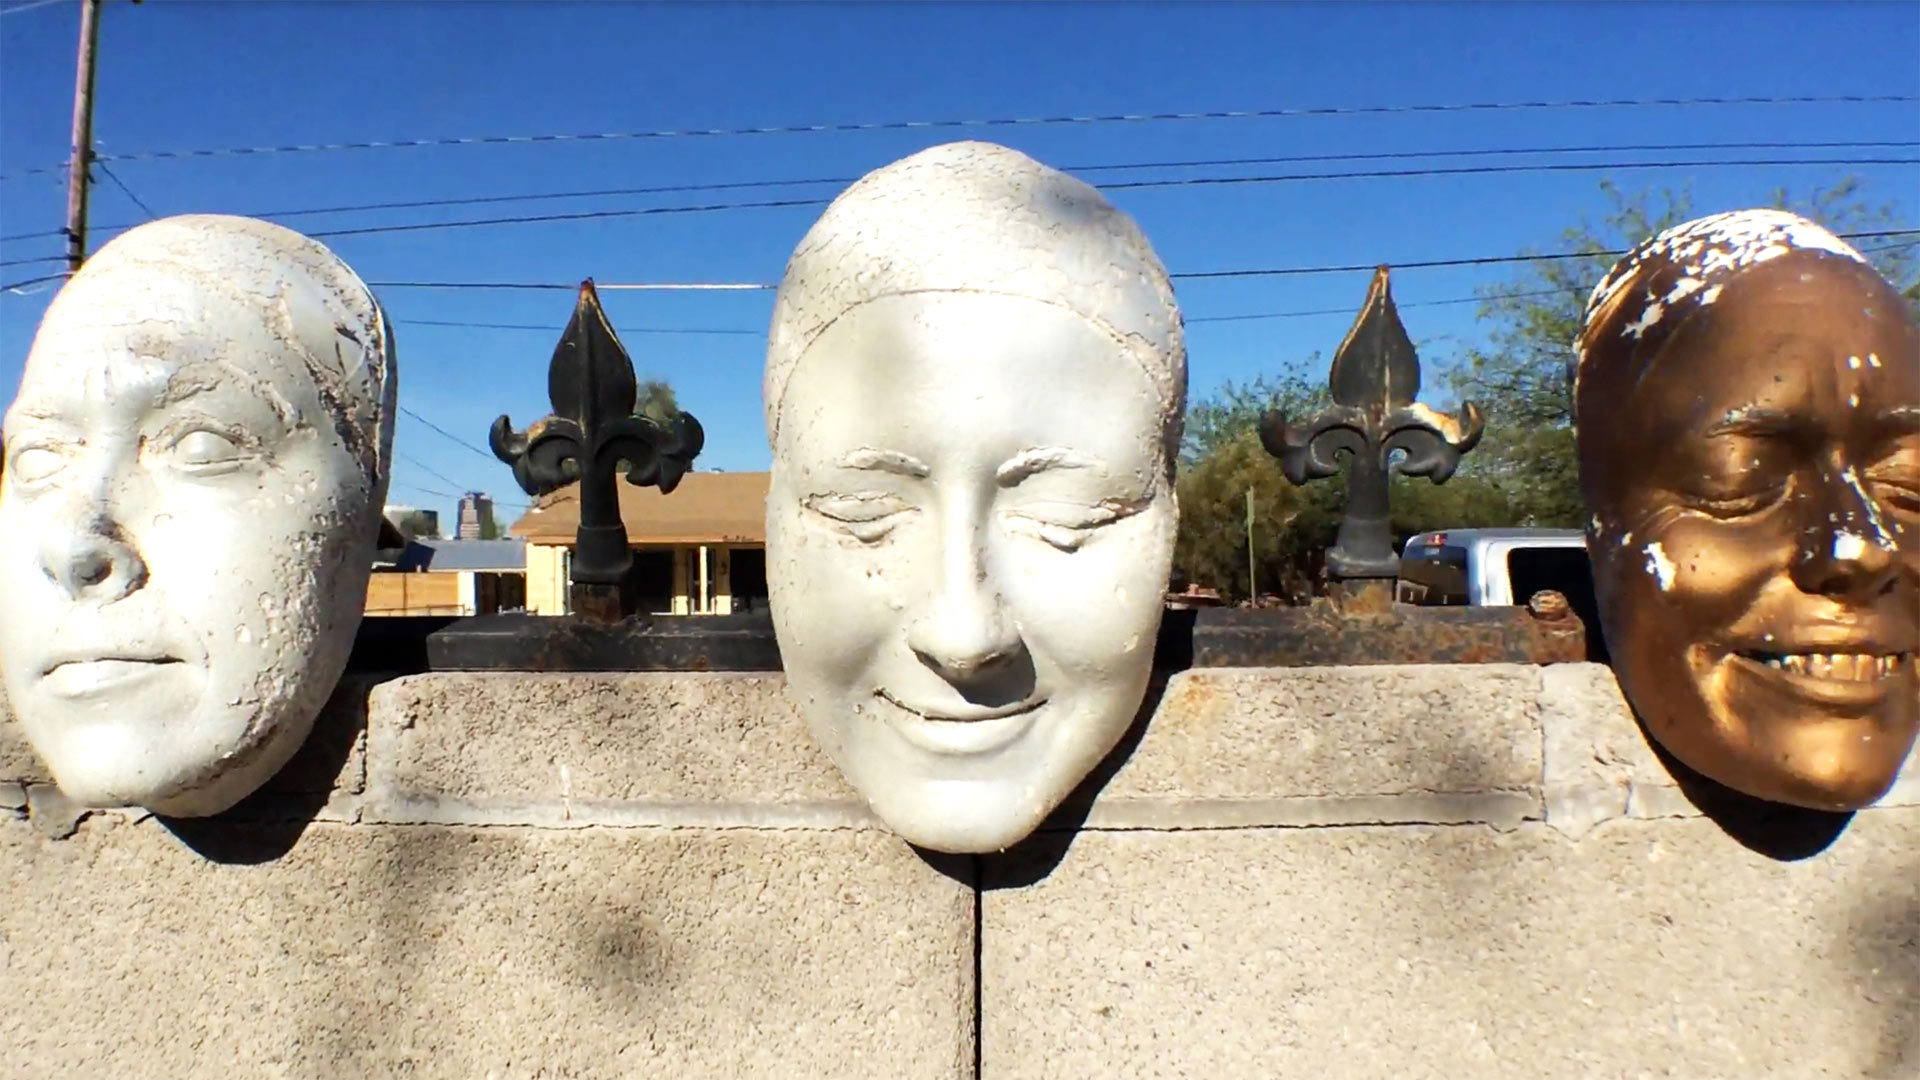 Life casts can be a powerful tool for self-exploration, says Paul Weir, a key organizer of Tucson's annual All Souls Procession.